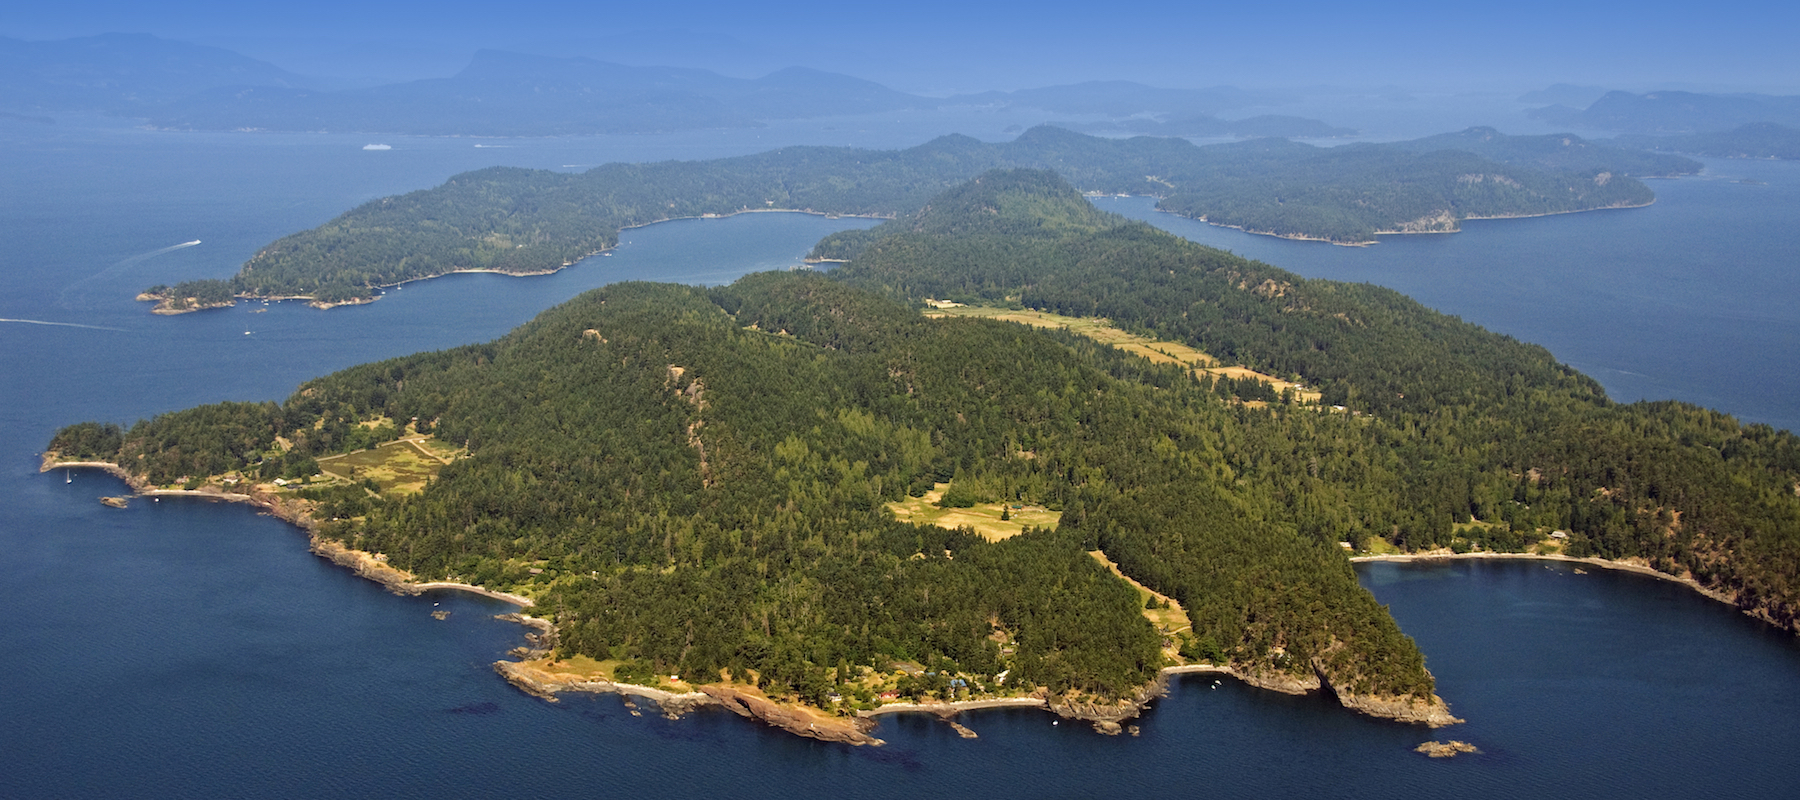 Pender Island from above